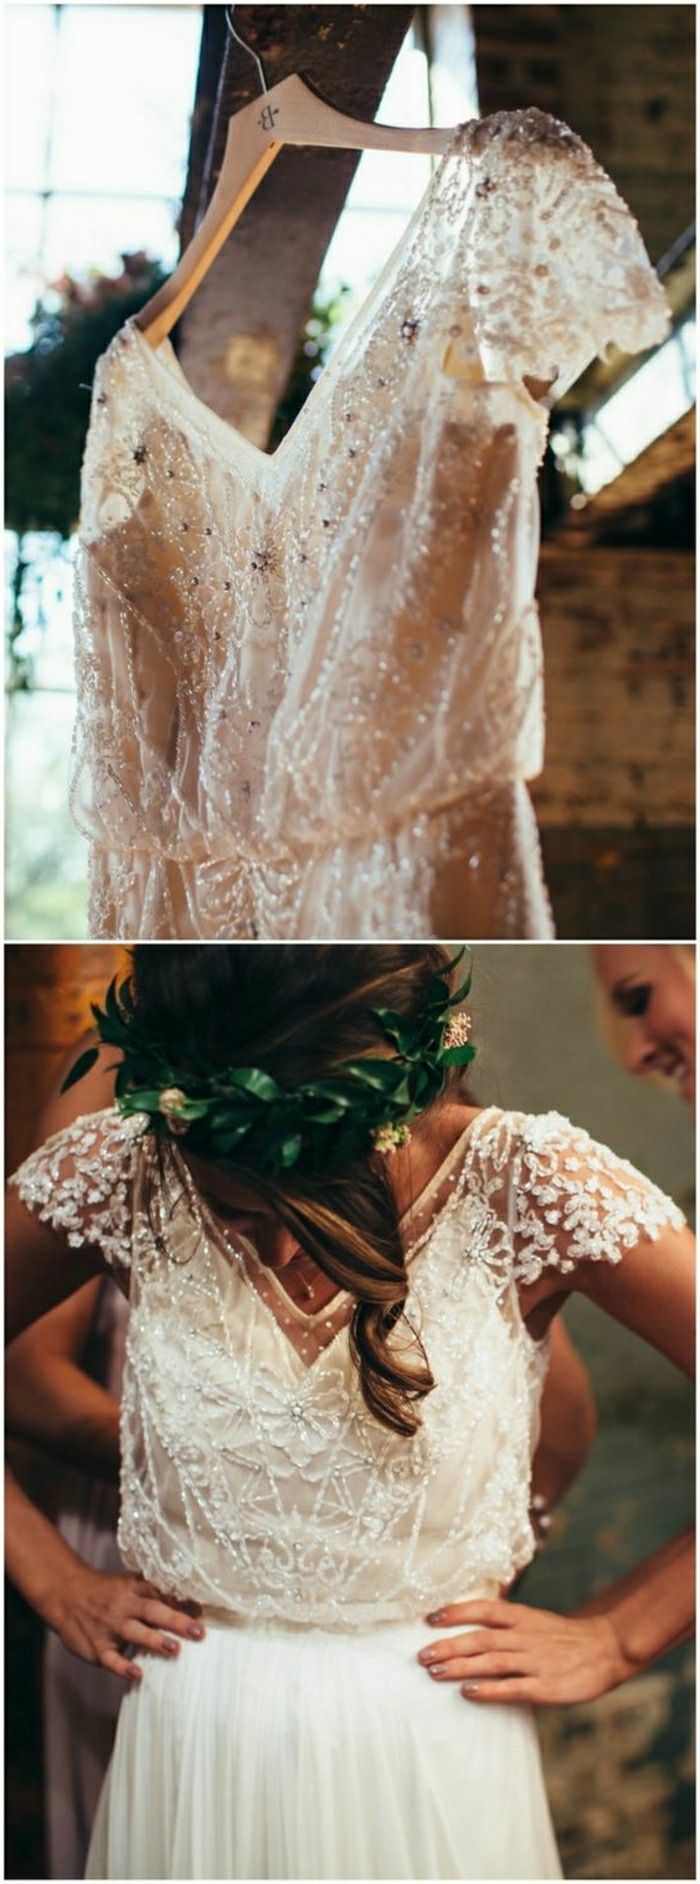 unique wedding dresses, two images of a white wedding dress, one on a hanger with a close up on its beaded and embroidered details, one on a brunette woman looking down with hands on hips